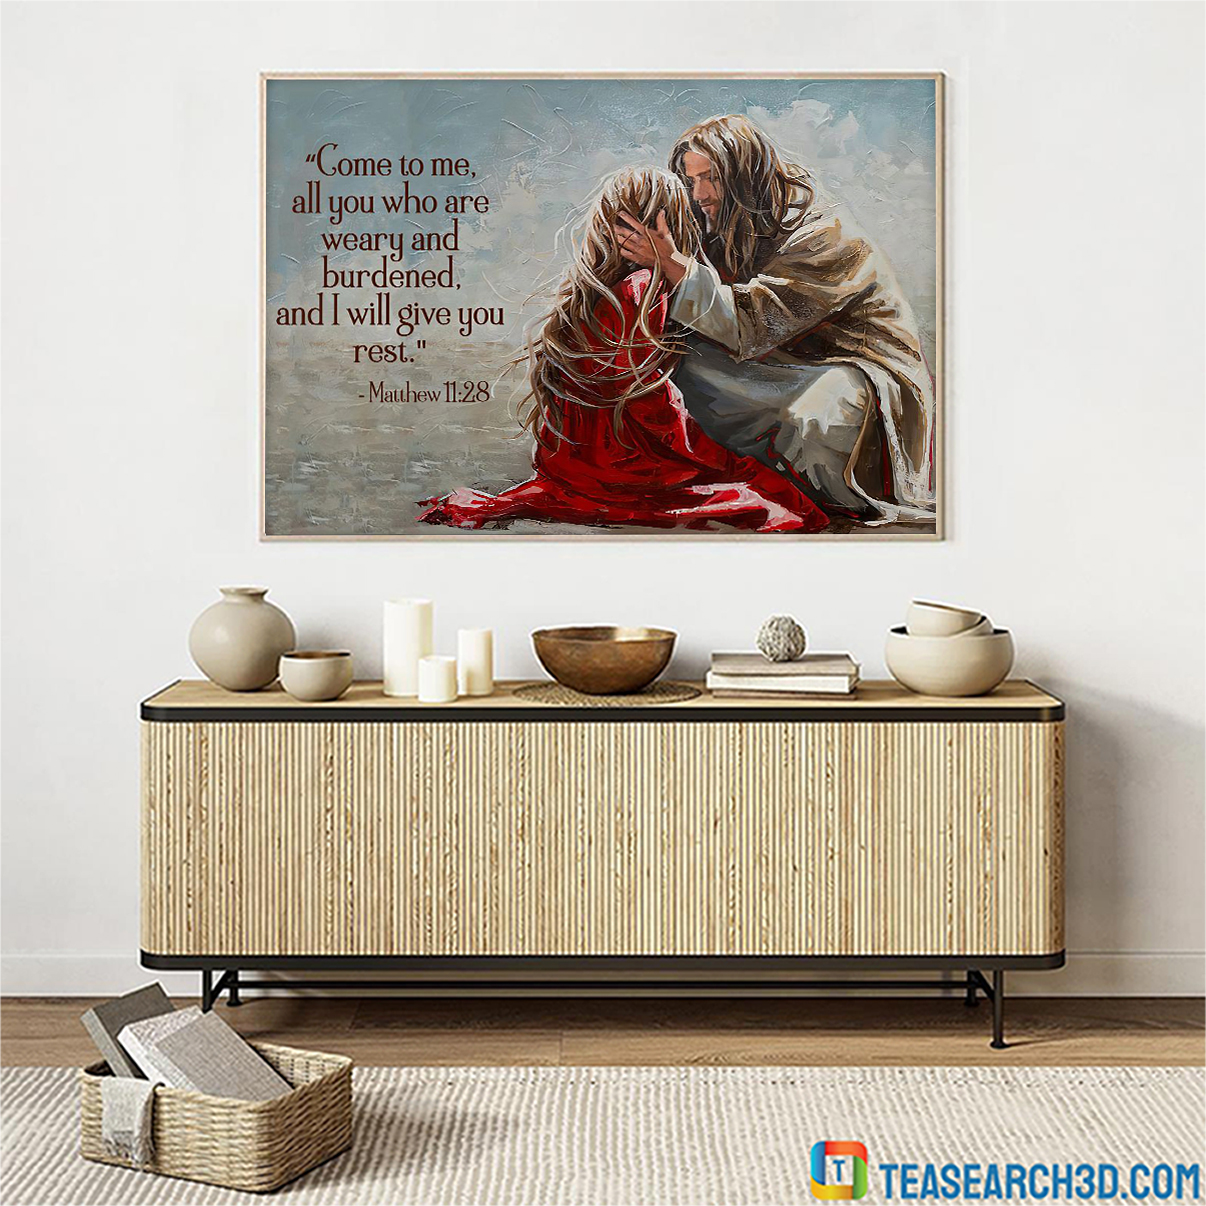 Come to me all you who are weary and burdened and I will give you rest poster